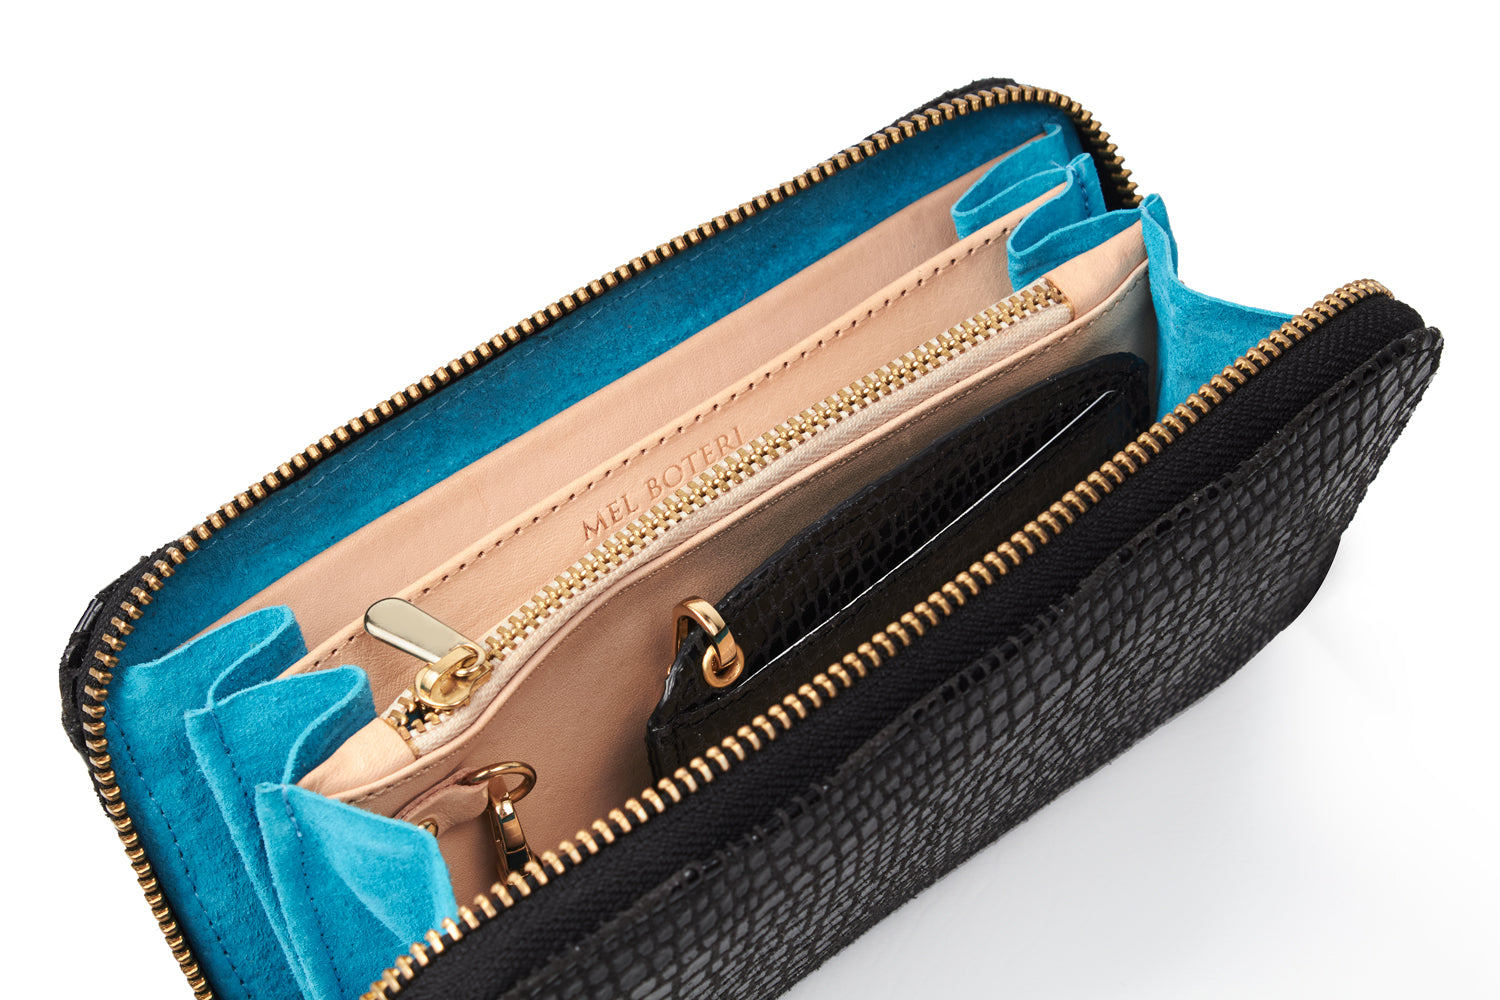 Mel Boteri | High Gloss, Black Lizard-Print Leather 'Maddox' Wallet | Signature Turquoise Lining